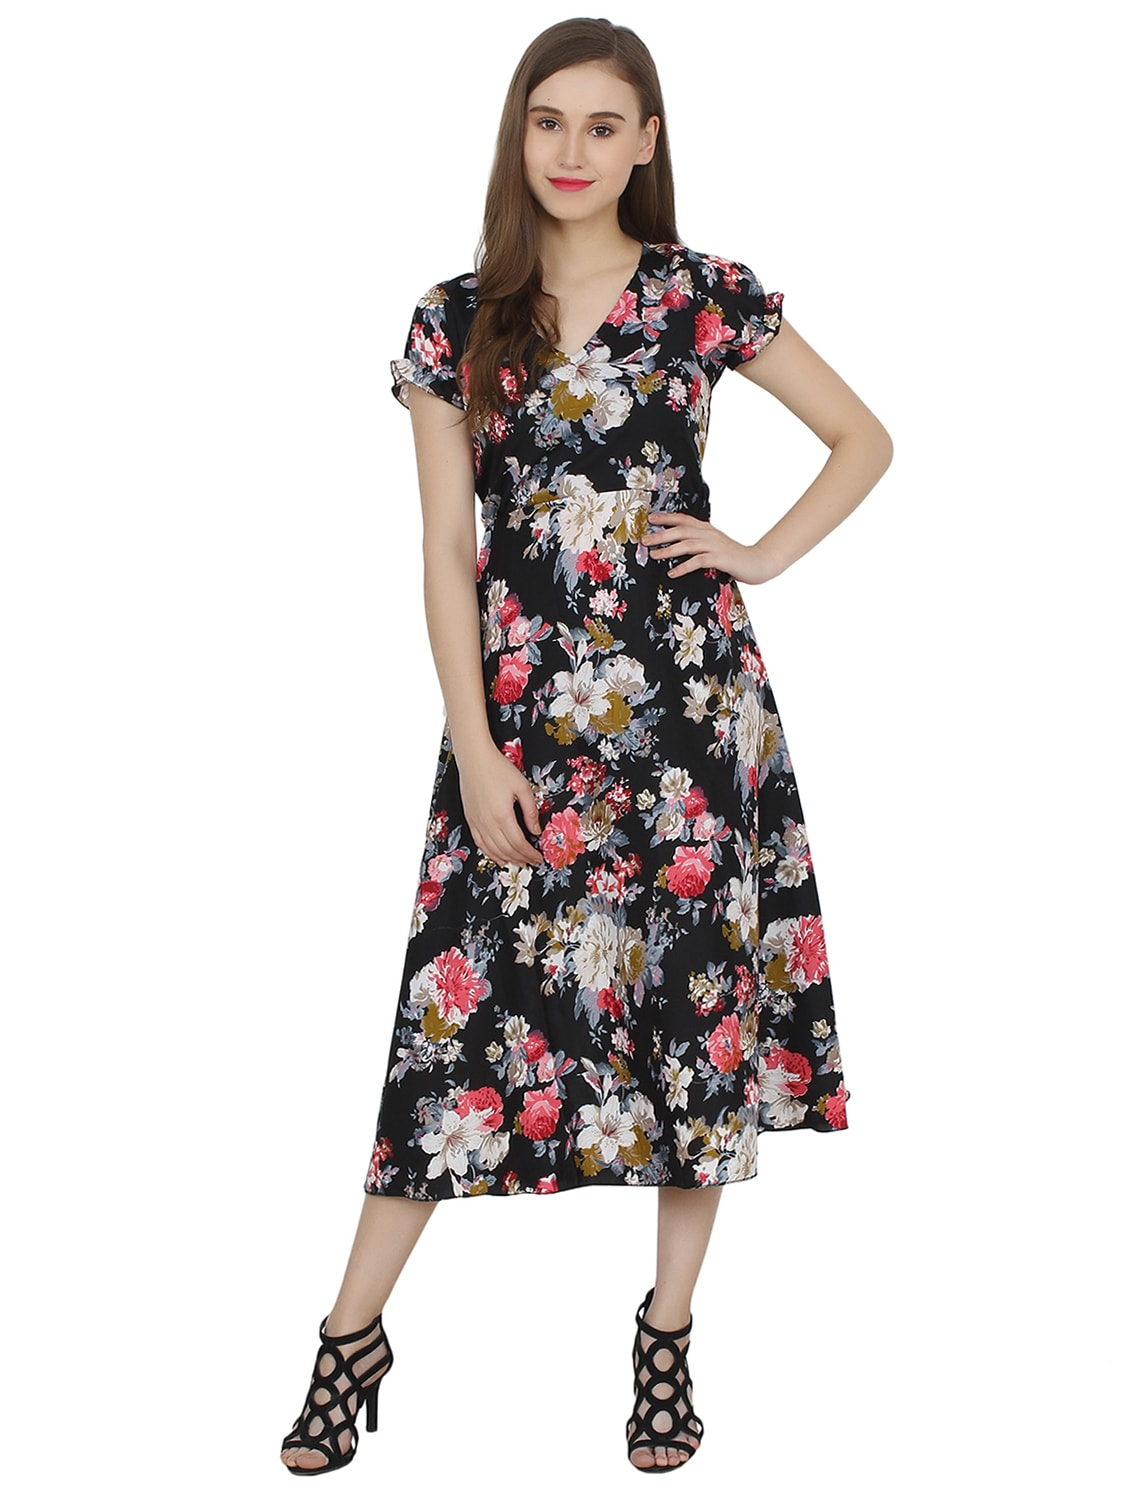 b7057382c977 Buy Flt   Flare Tie Back Floral Dress for Women from My Swag for ₹623 at  61% off